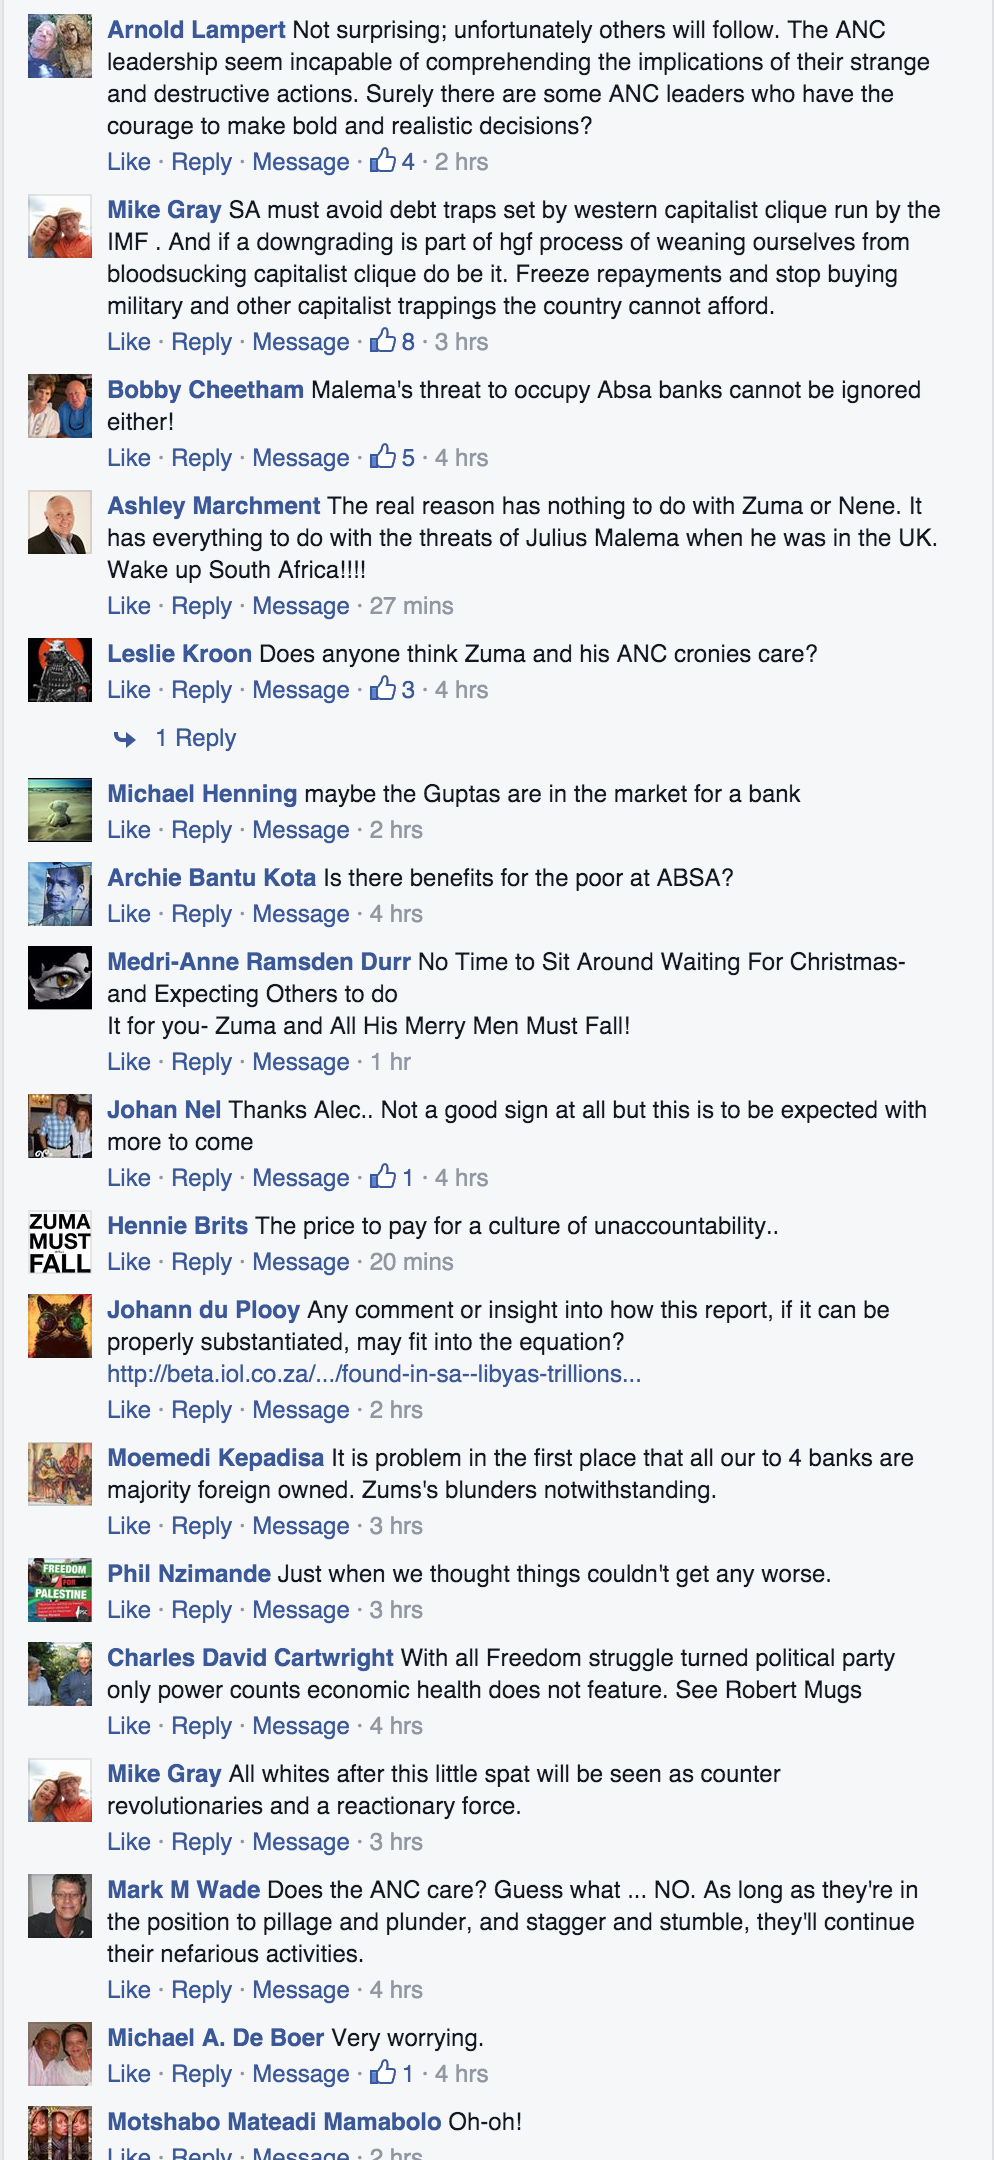 Some of the comments under the link to this story on Alec Hogg's Facebook page